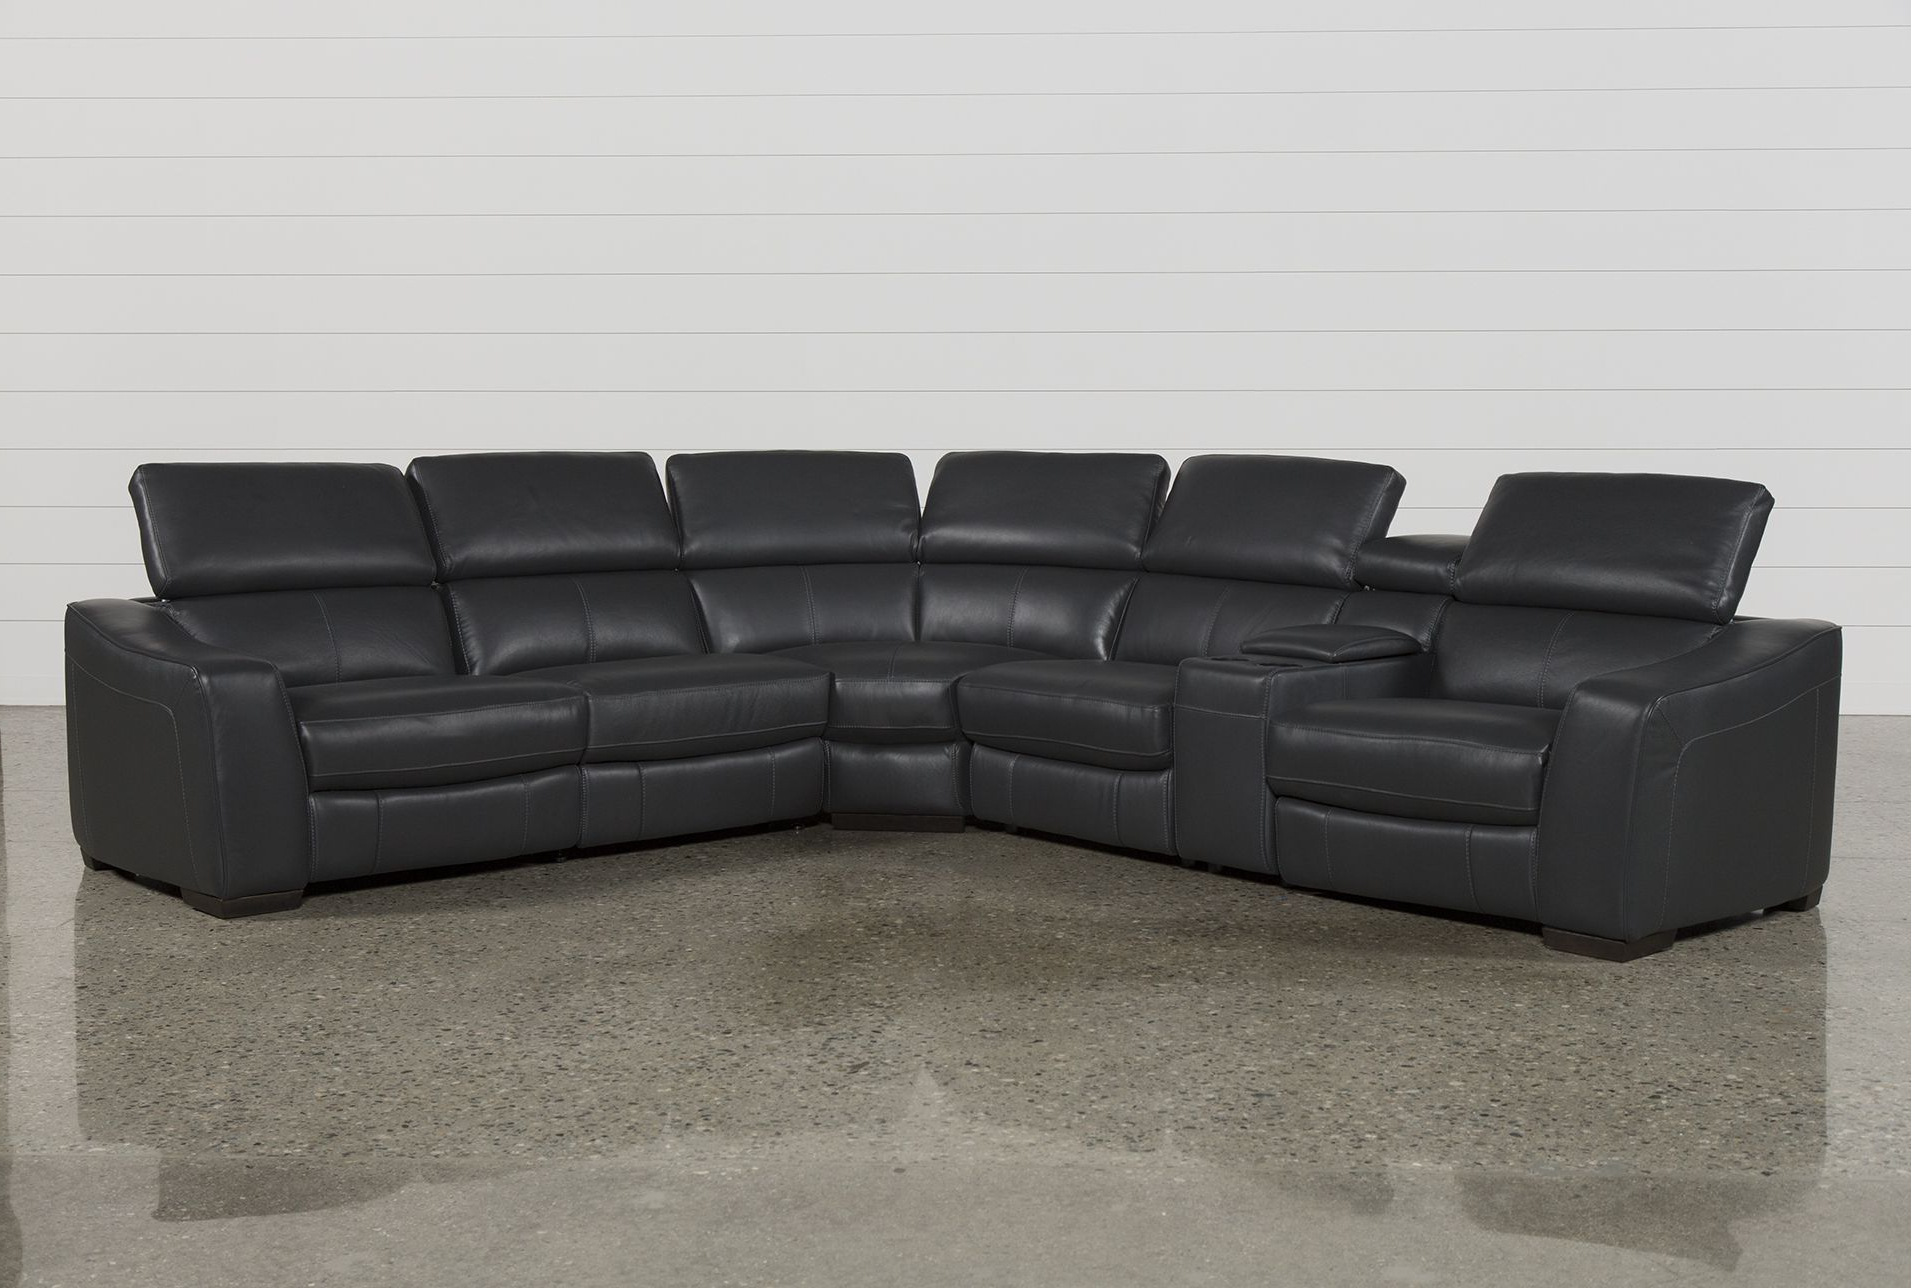 Widely Used 6 Piece Power Reclining Sectional, Kristen Slate Grey, Sofas Pertaining To Tess 2 Piece Power Reclining Sectionals With Laf Chaise (View 15 of 20)